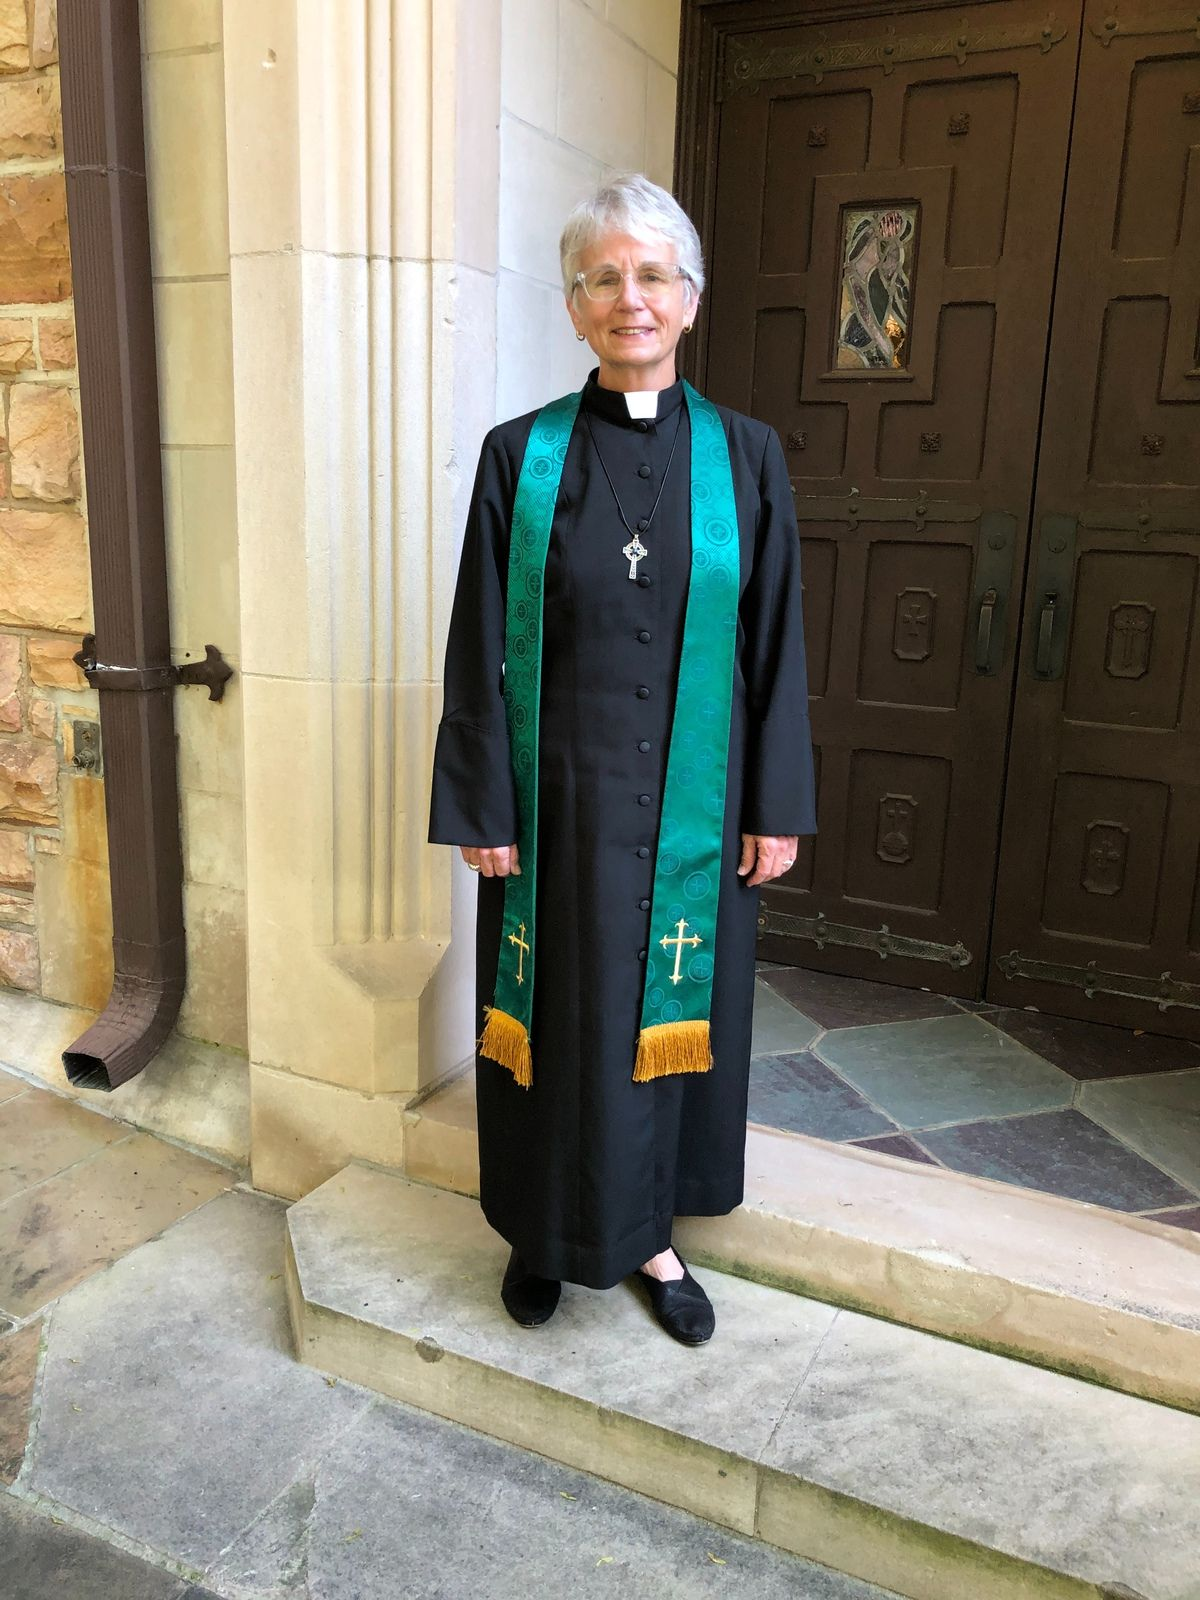 Rev. Lucy Turner's Special Gift